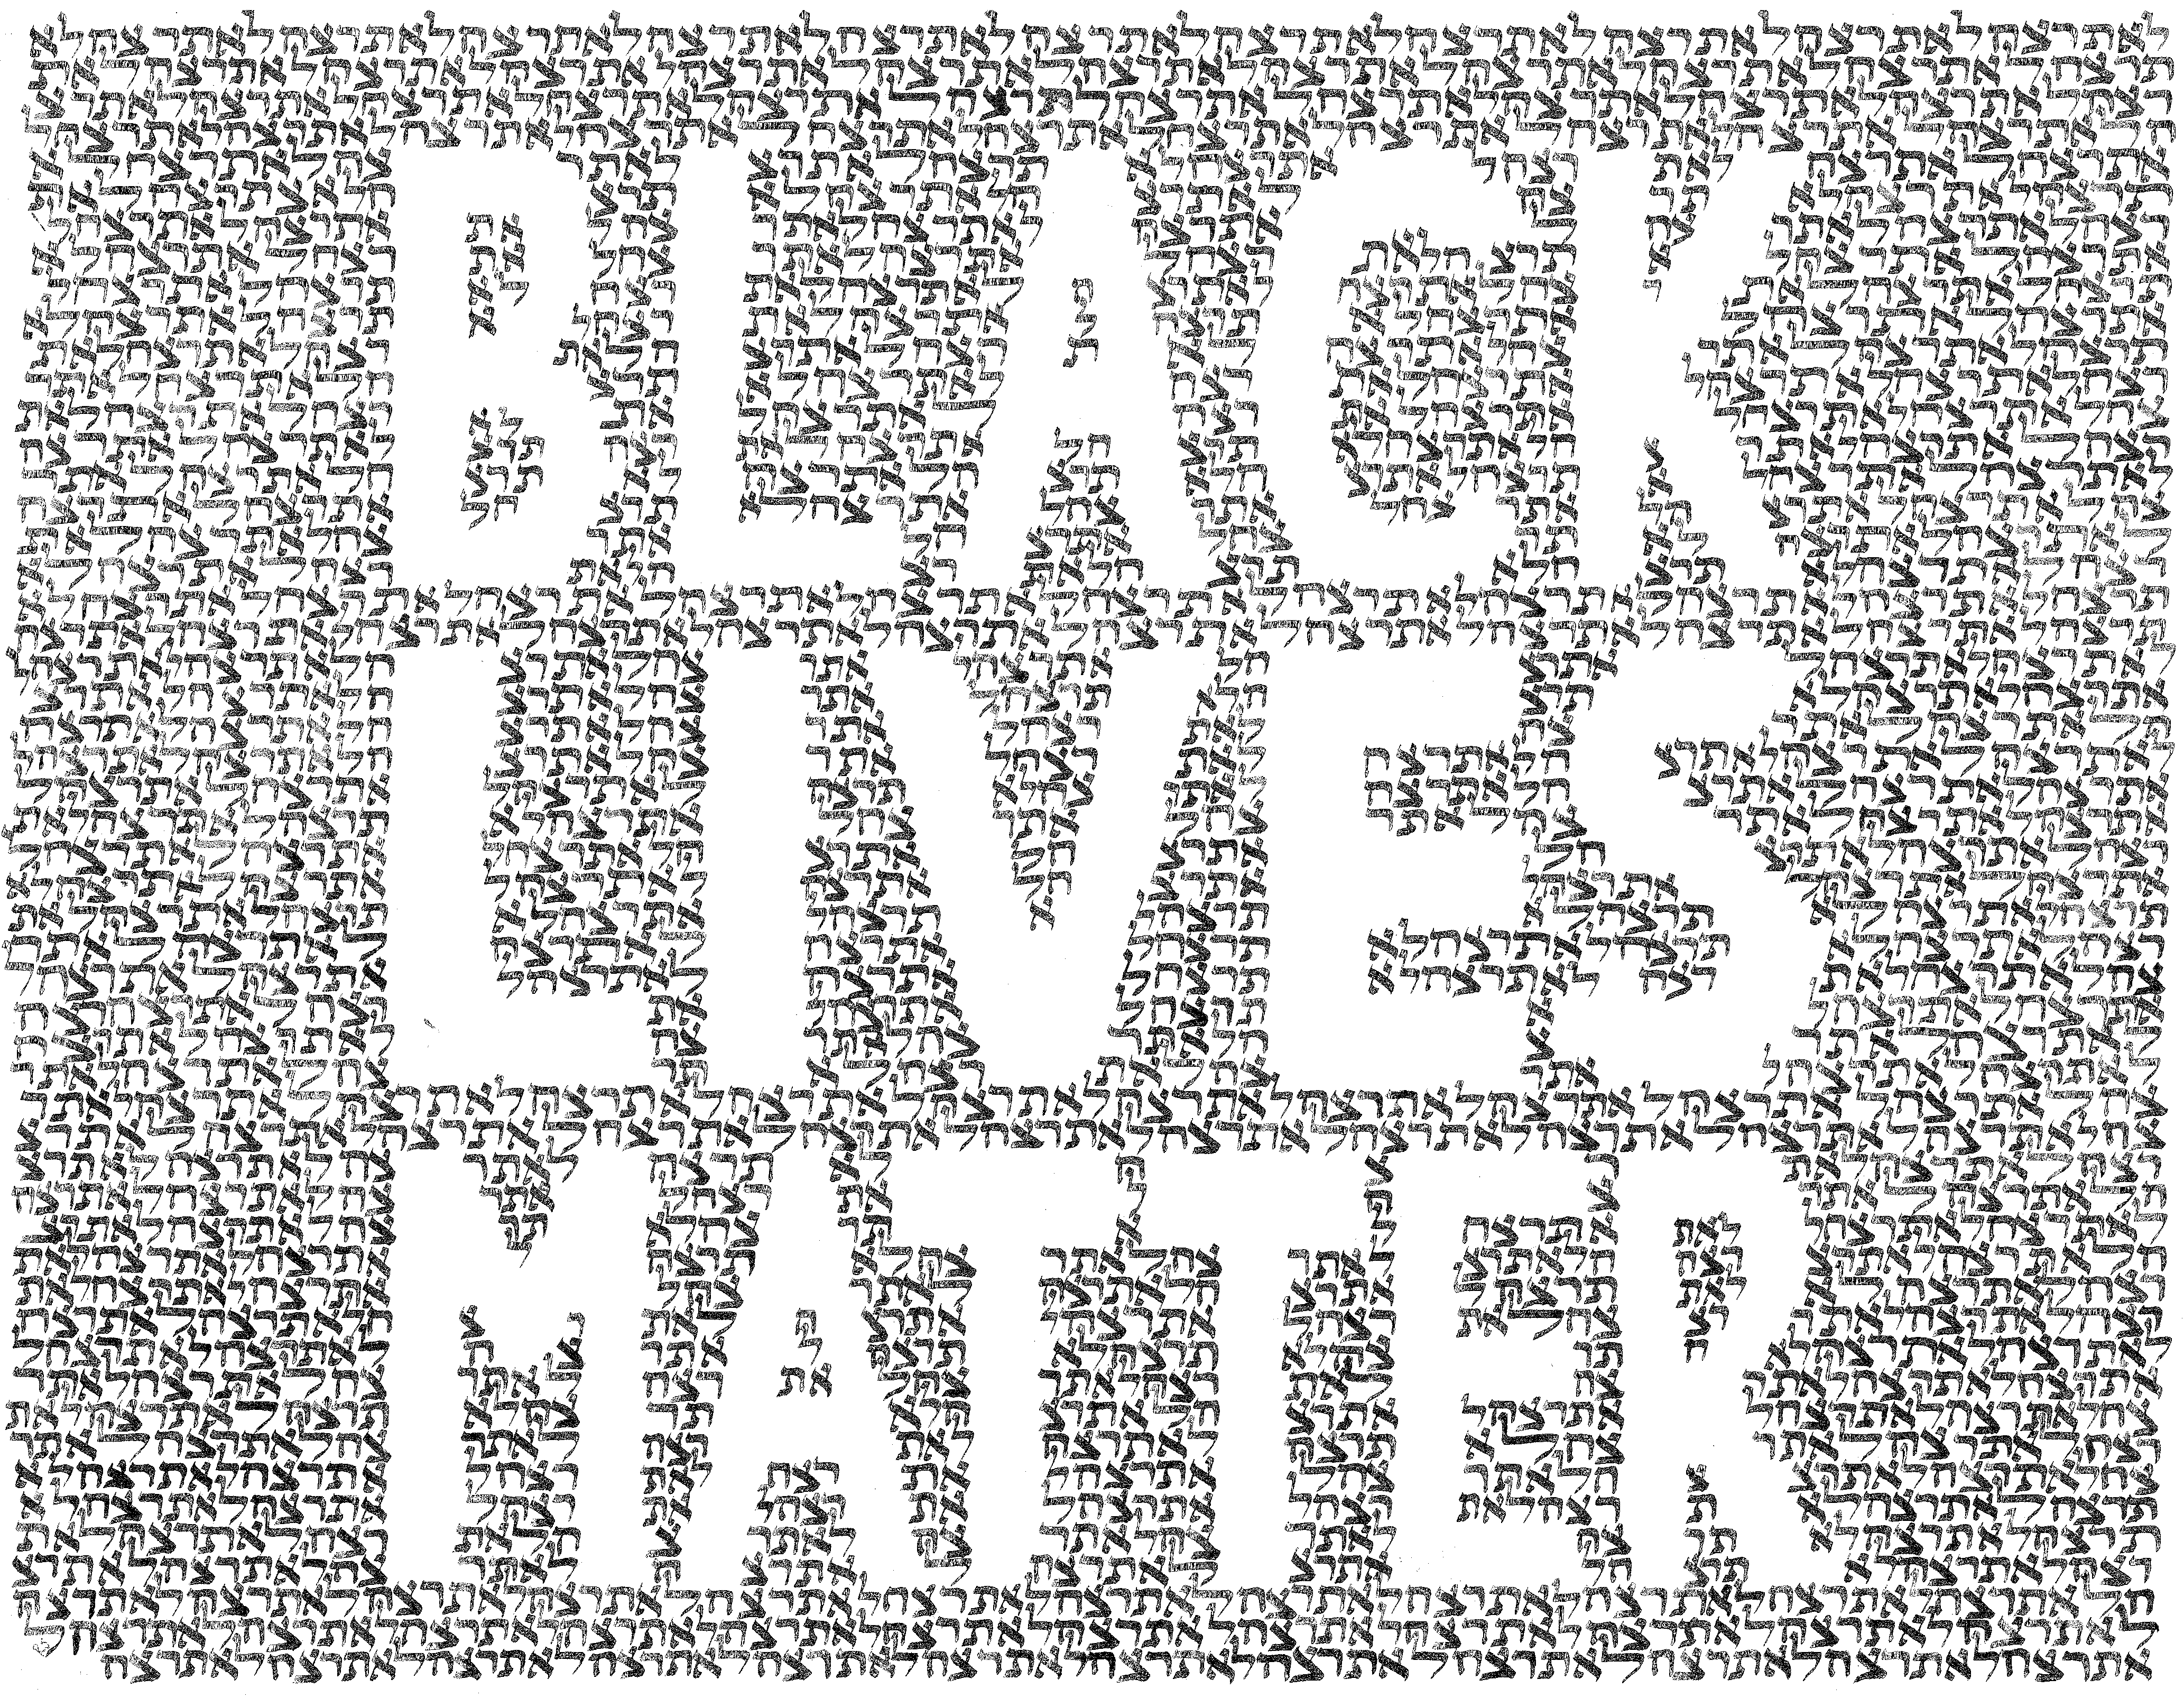 """""""Black Lives Matter"""" spelled out in the space between Hebrew calligraphy repeating """"Lo Tirtzach"""" (do not murder)"""